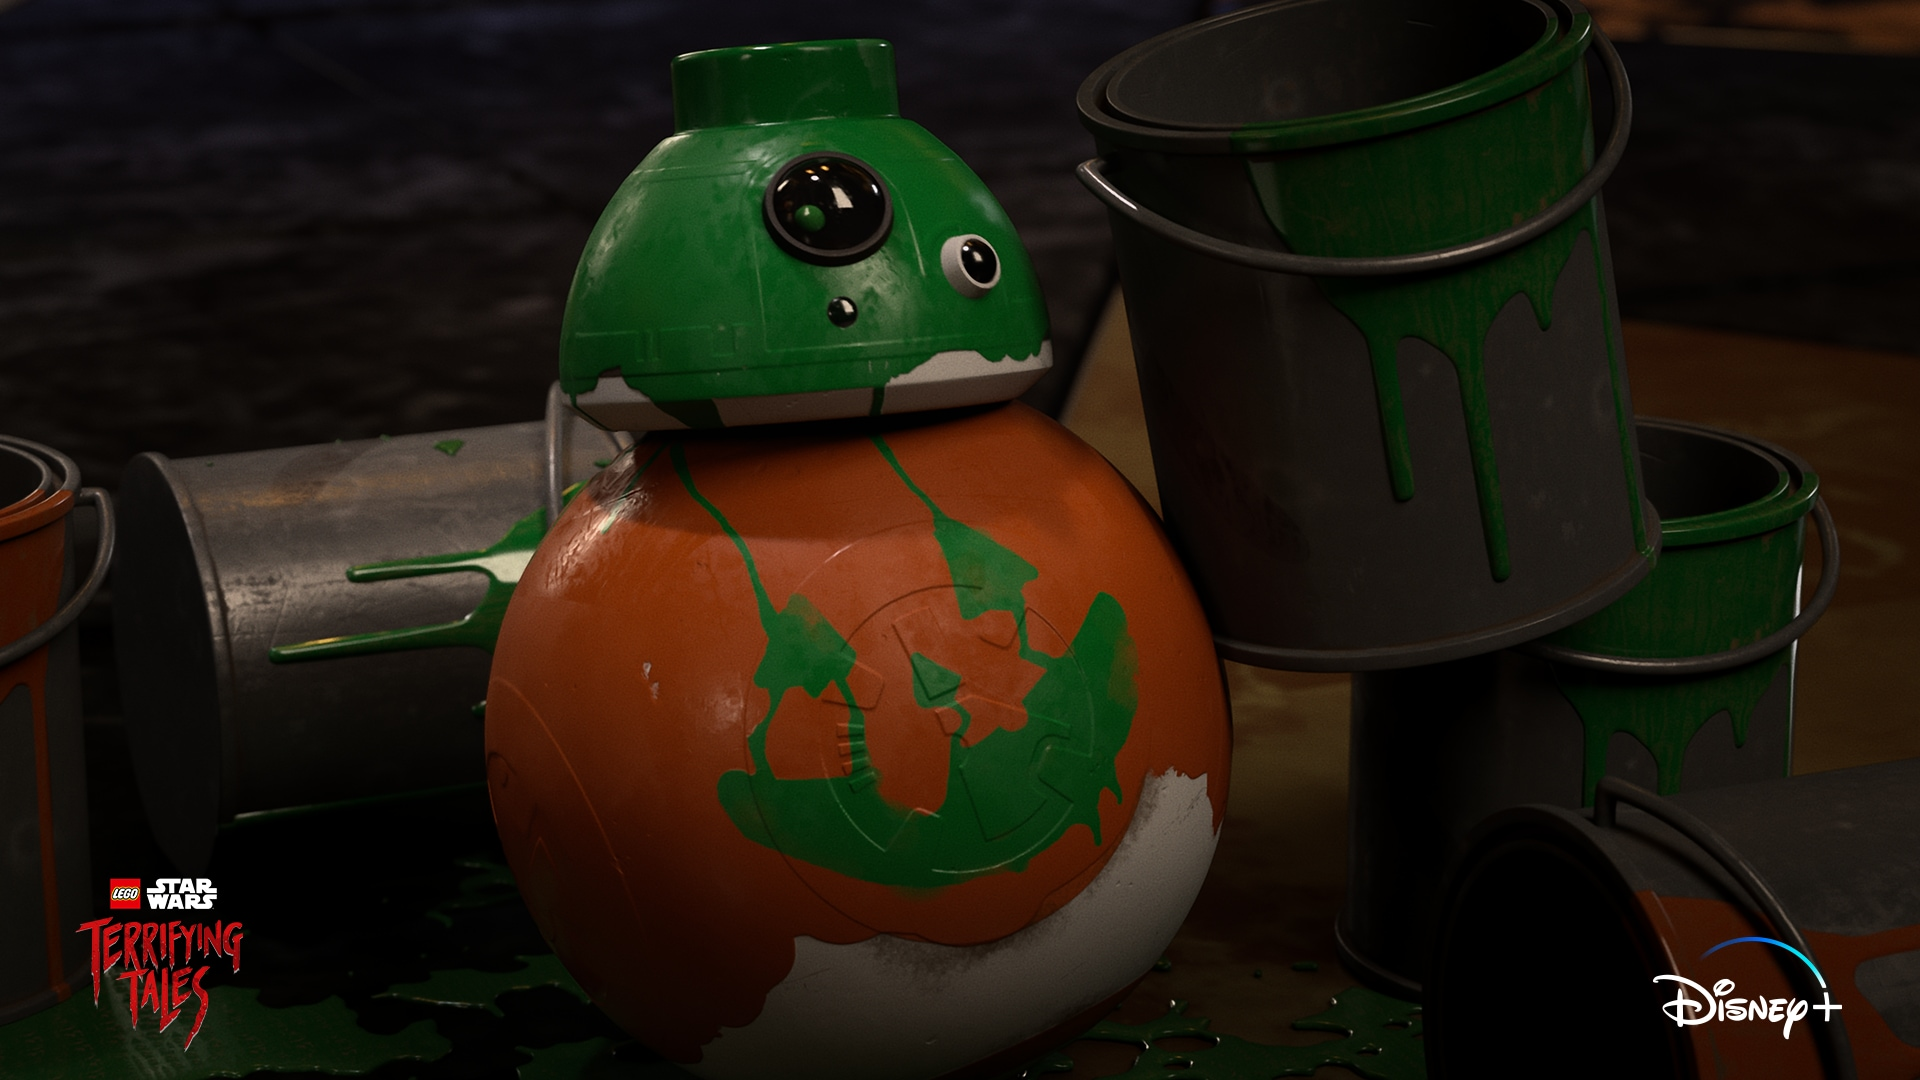 BB-8 in LEGO STAR WARS TERRIFYING TALES exclusively on Disney+. ©2021 Lucasfilm Ltd. & TM. All Rights Reserved.